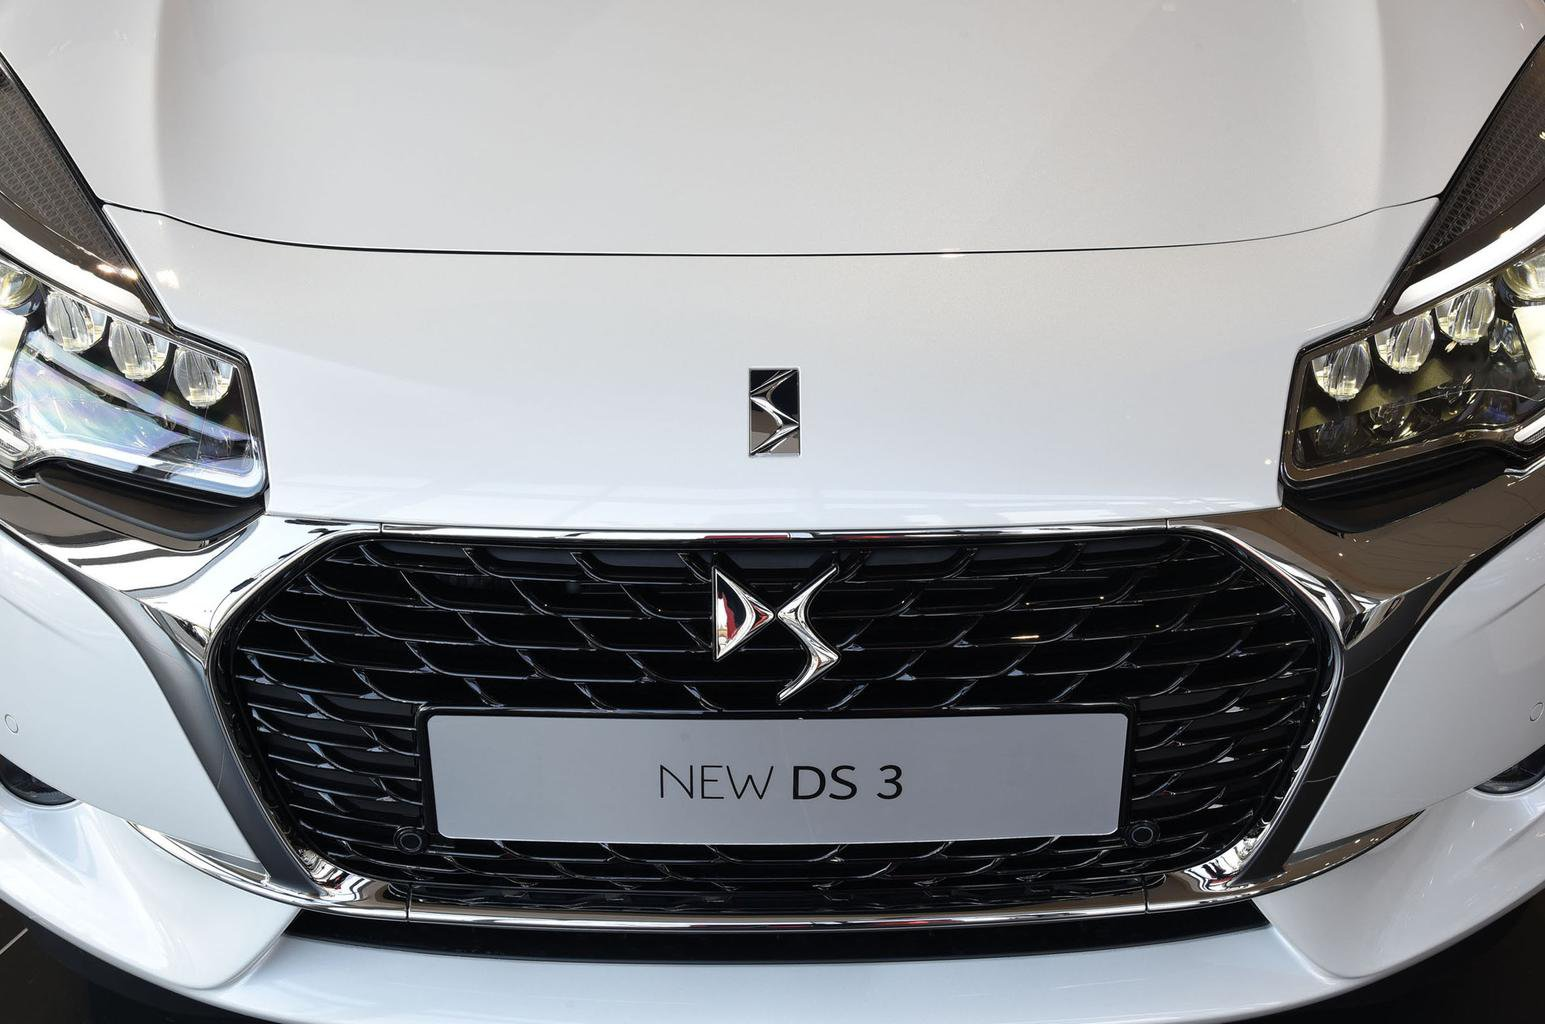 New DS 3 - What Car? Reader Test Team review